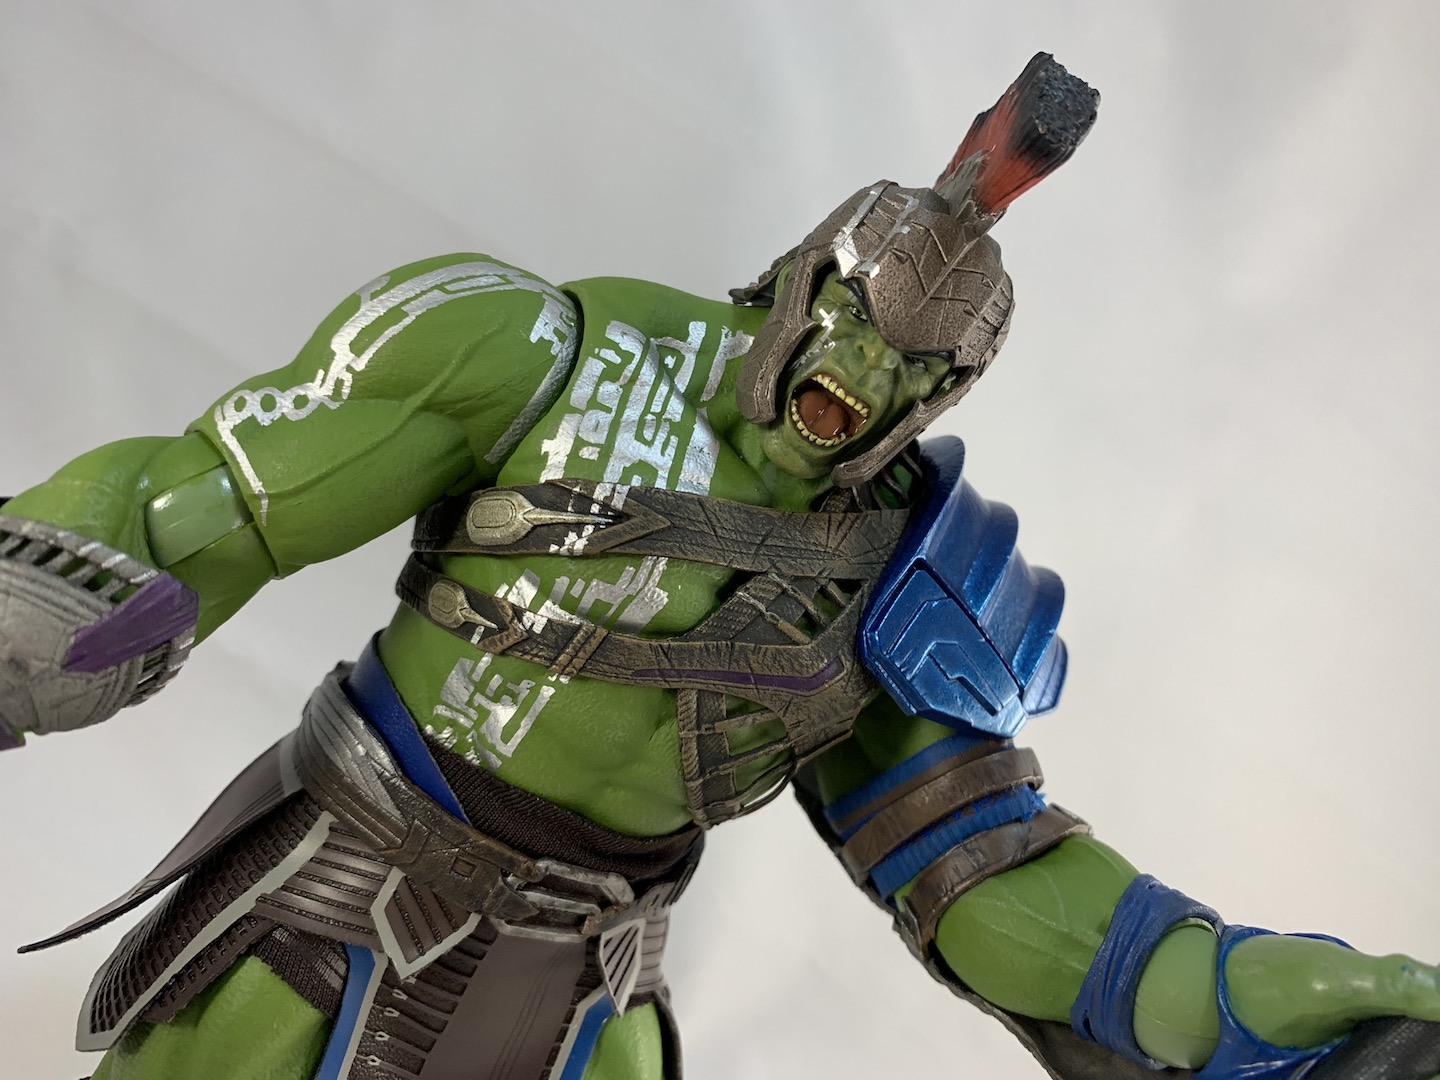 Hulk - Thor Ragnarok One:12 Collective Mezco action figure unboxing